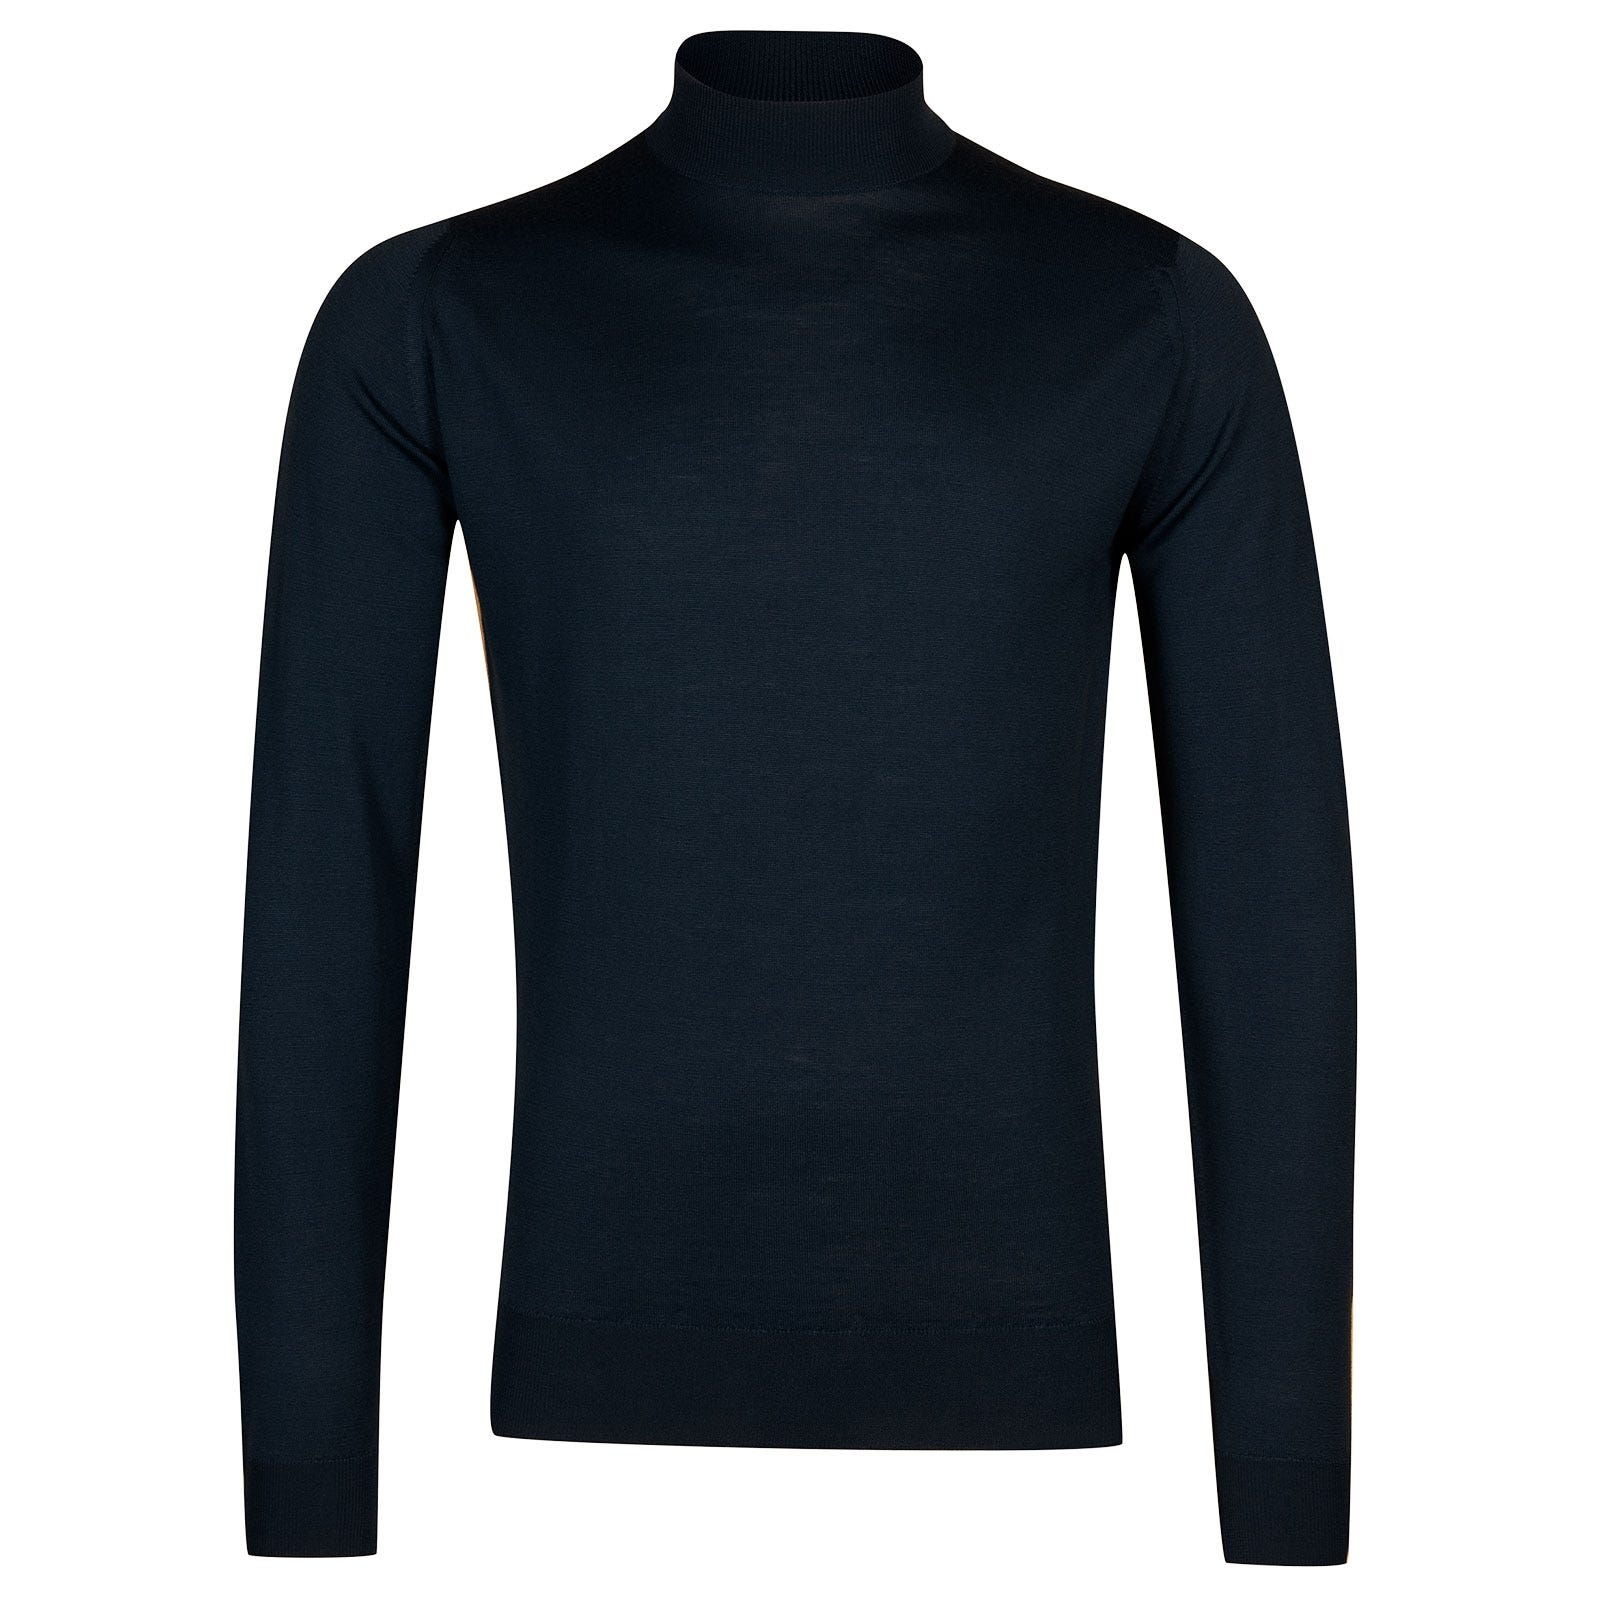 John Smedley Harcourt Merino Wool Pullover in Orion Green-S